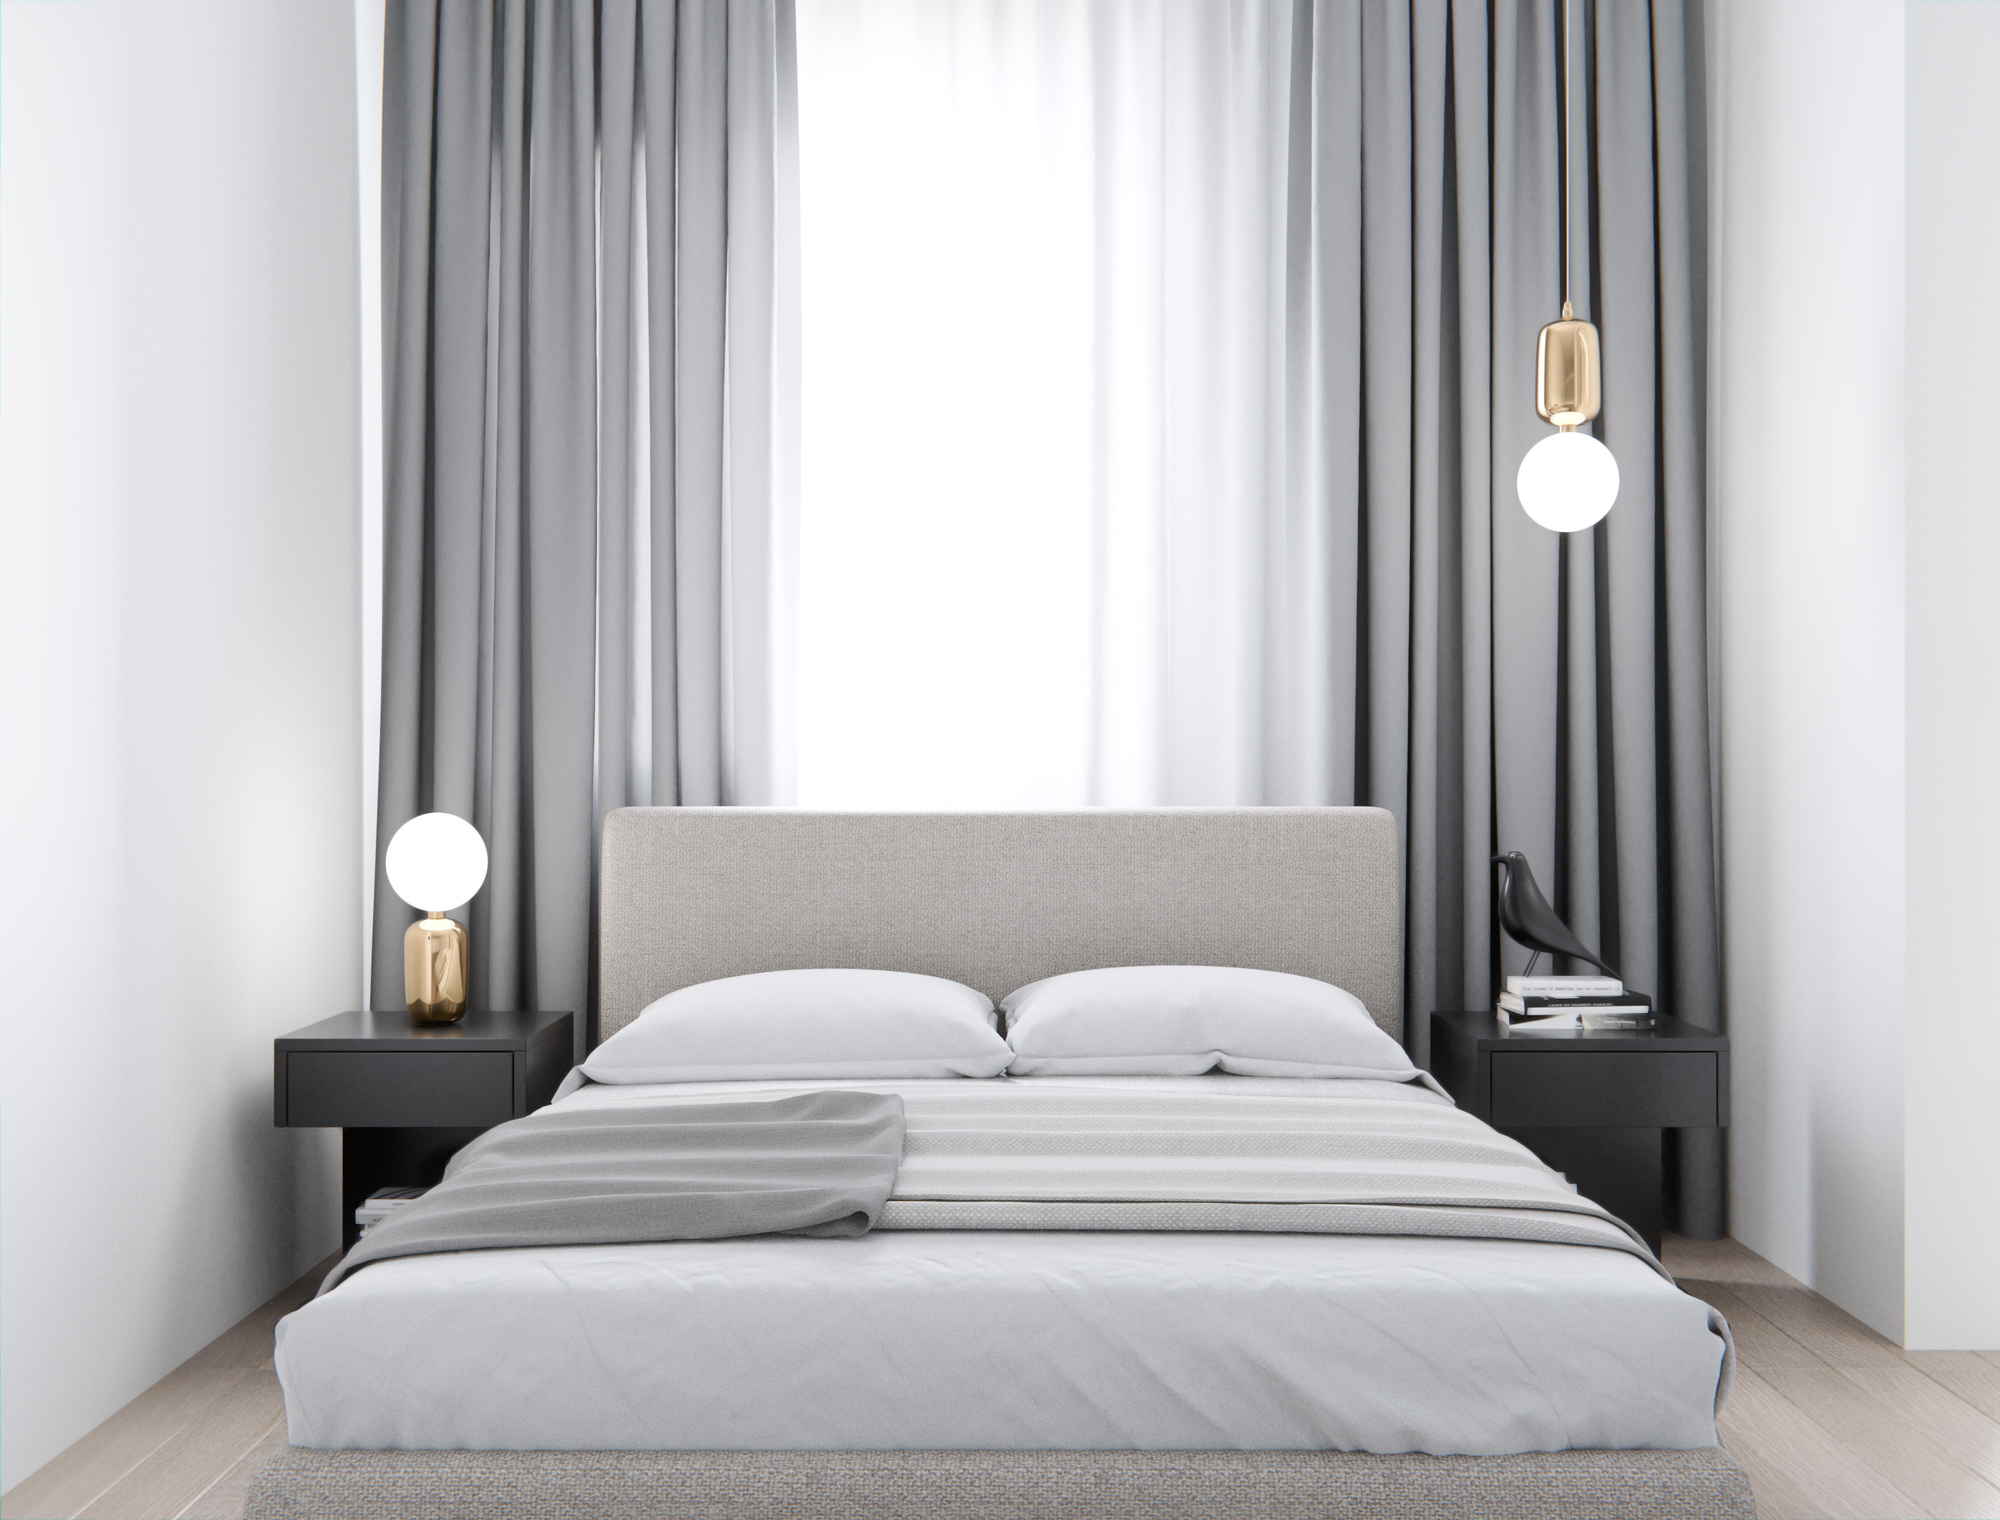 Bedroom Ideas 52 Modern Design Ideas For Your Bedroom The Luxpad within 12 Clever Concepts of How to Makeover Ideas For Modern Bedrooms